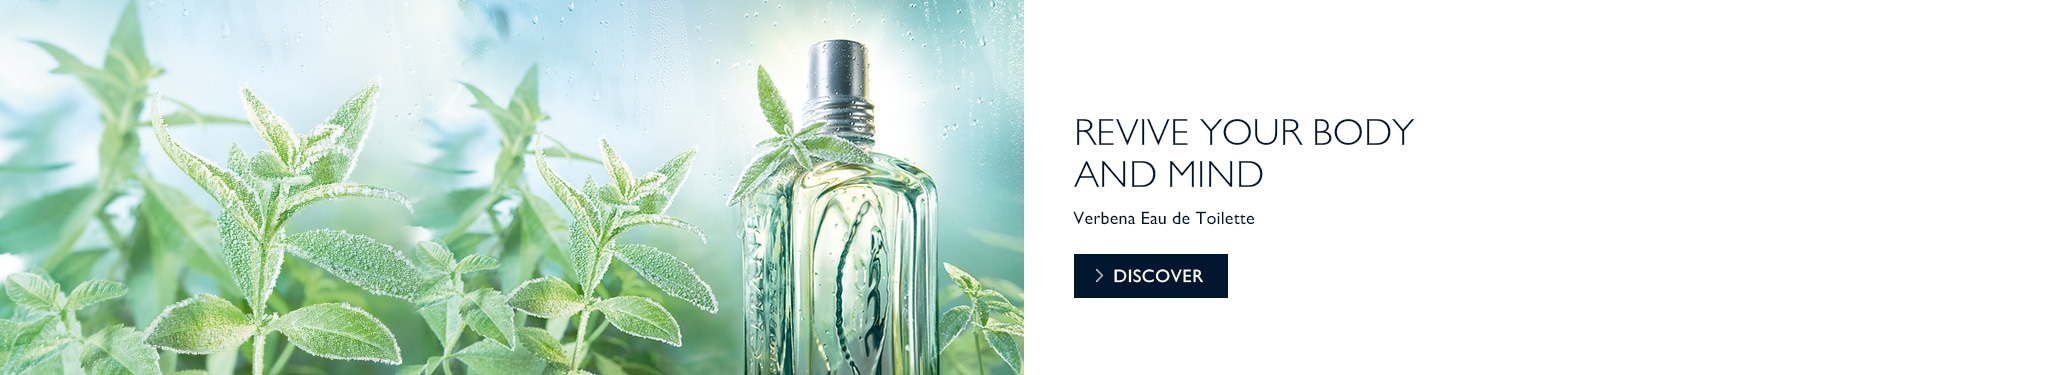 Revive your body and mind with Verbena Eau de Toilette.